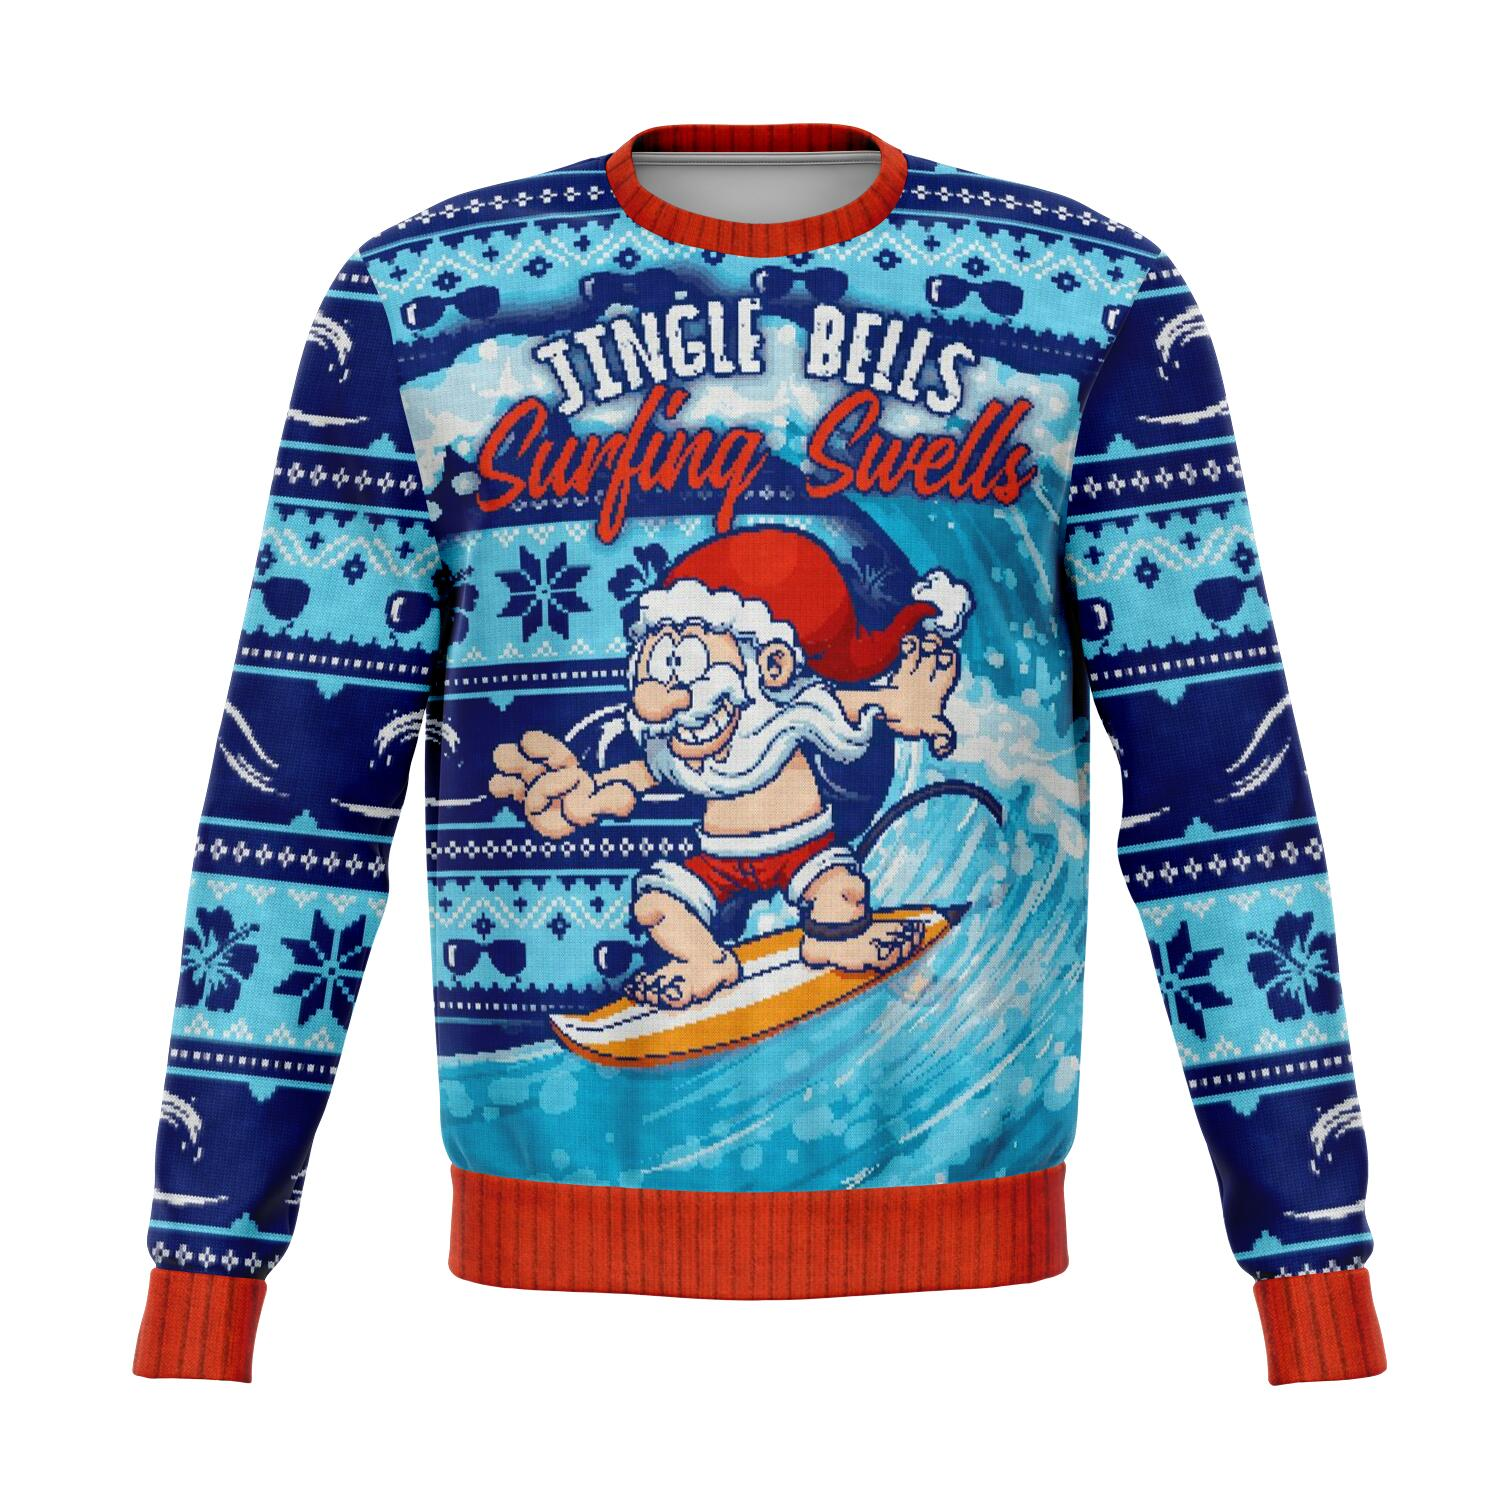 Jingle Bells Surfing Swells UGLY CHRISTMAS SWEATER New